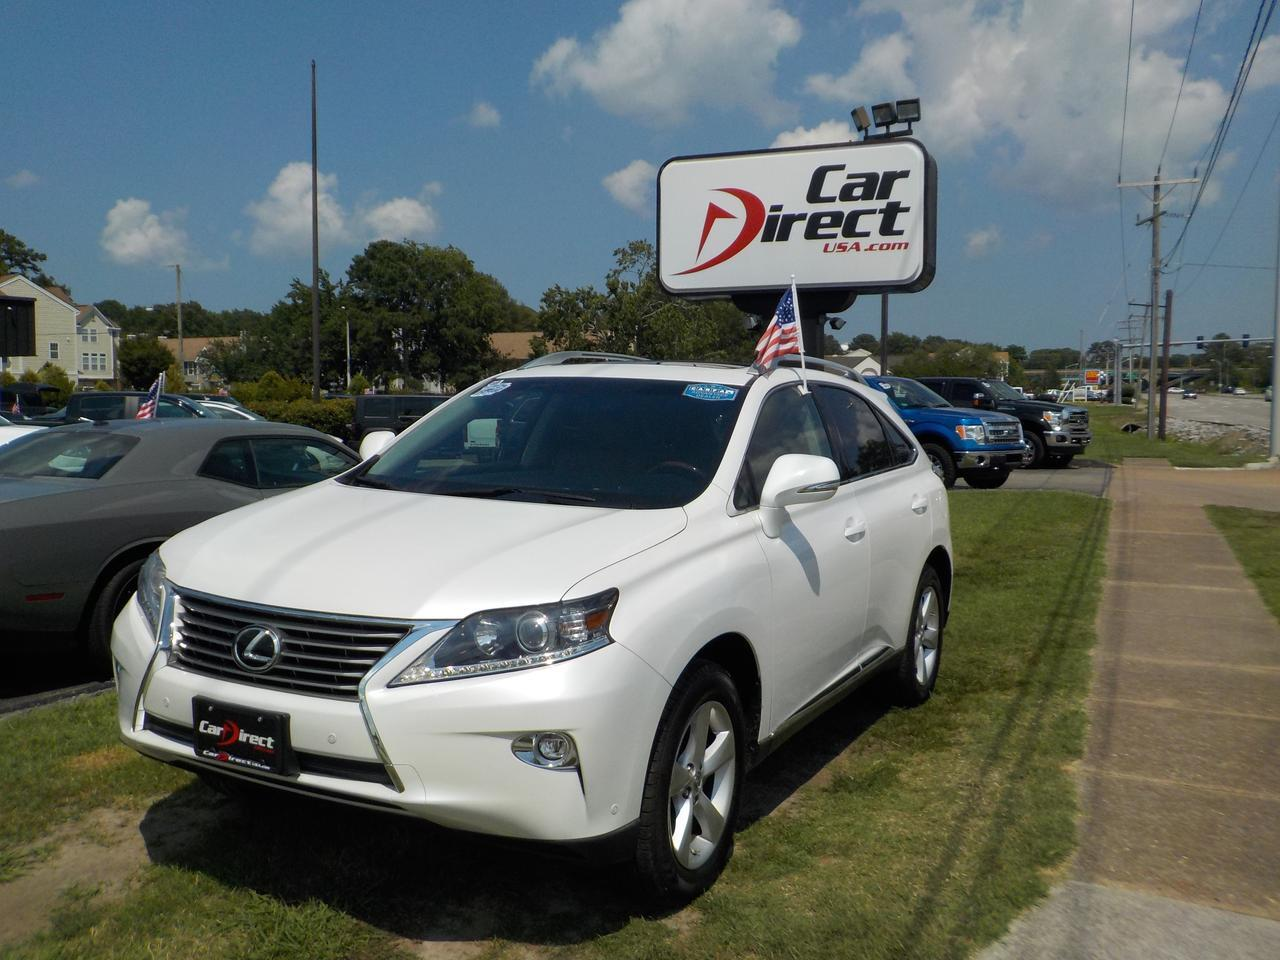 2015 LEXUS RX !350, LEATHER, NAV, HEATED/COOLED SEATS, SUNROOF, BACKUP CAM, PARKING SENSORS, LOW MILES!